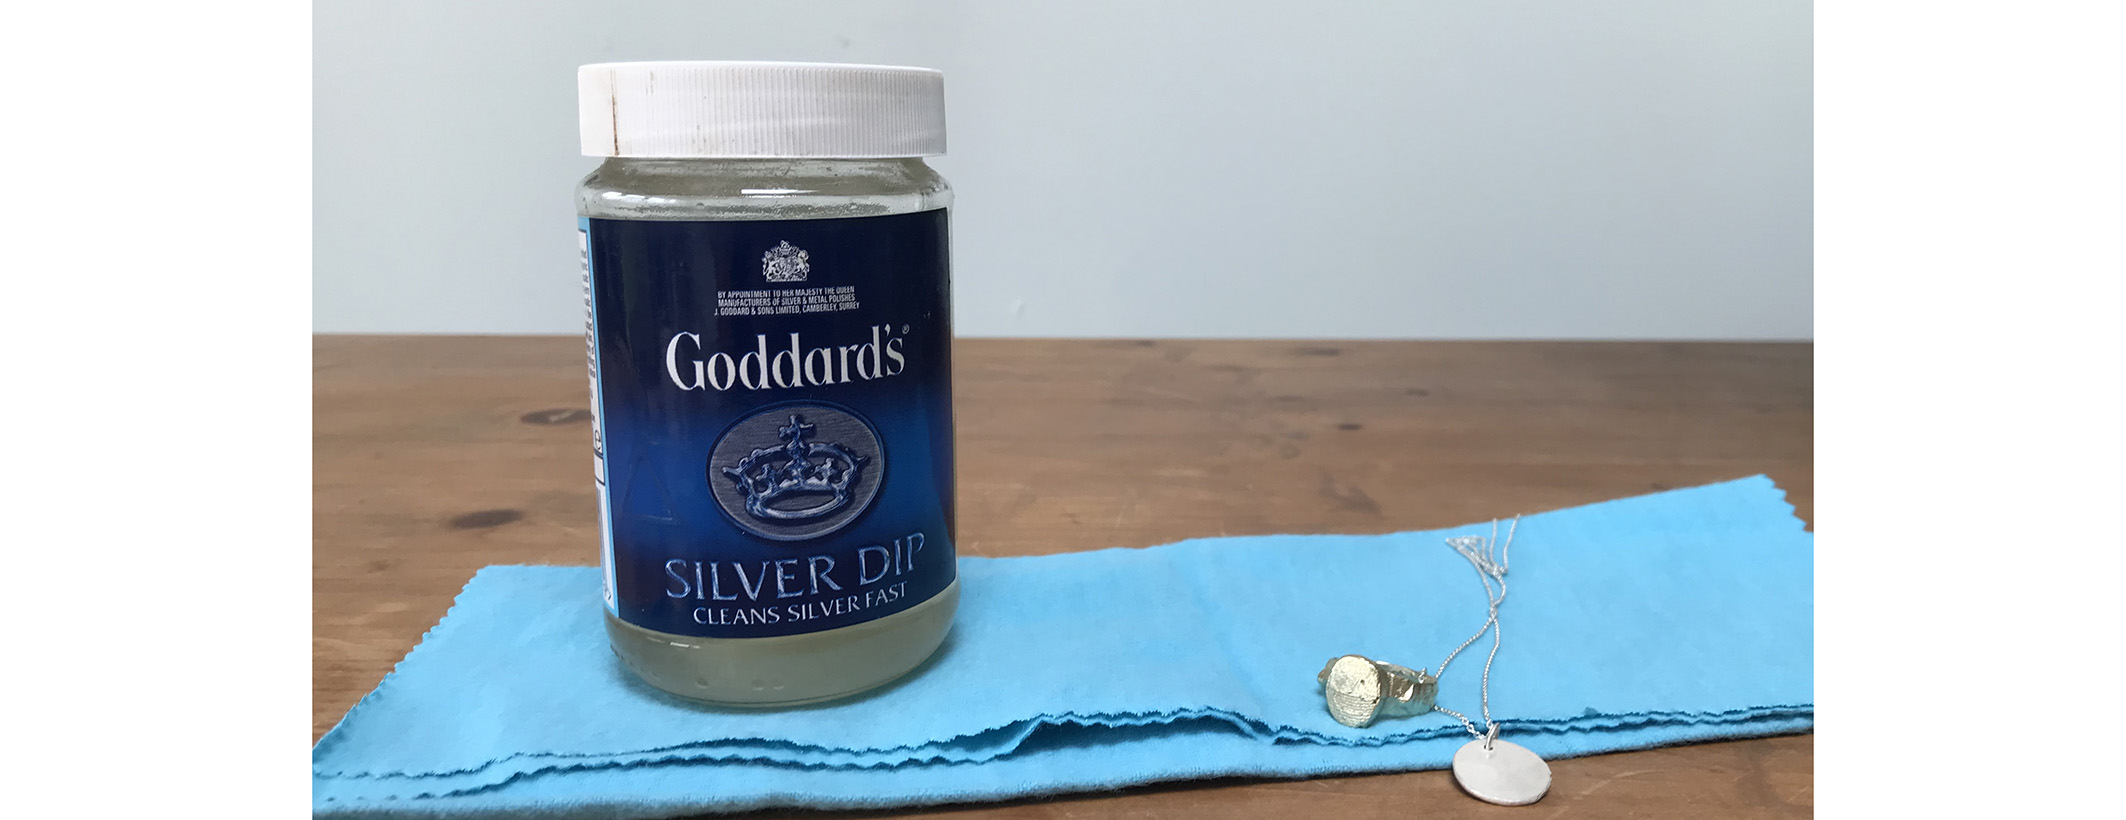 Goddards silver dip and a goddards silver polishing cloth